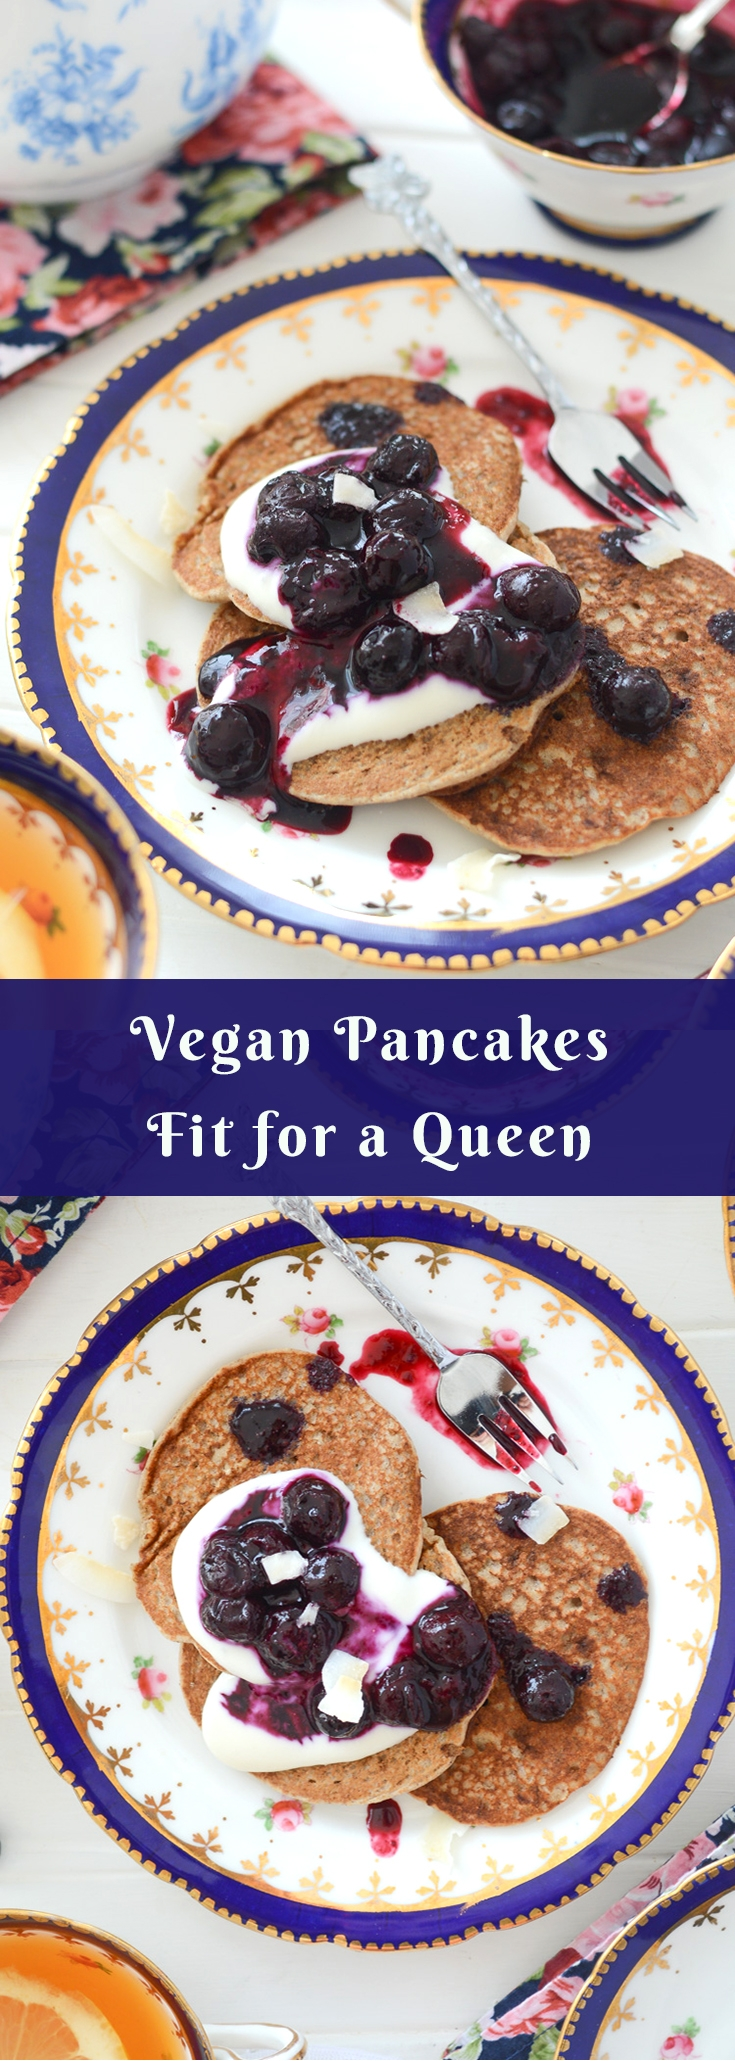 Vegan pancakes fit for a royal party via Fit Foodie Nutter #vegan #veganpancakes #royalwedding #royalweddingrecipes #pancakes #healthy #cleaneating